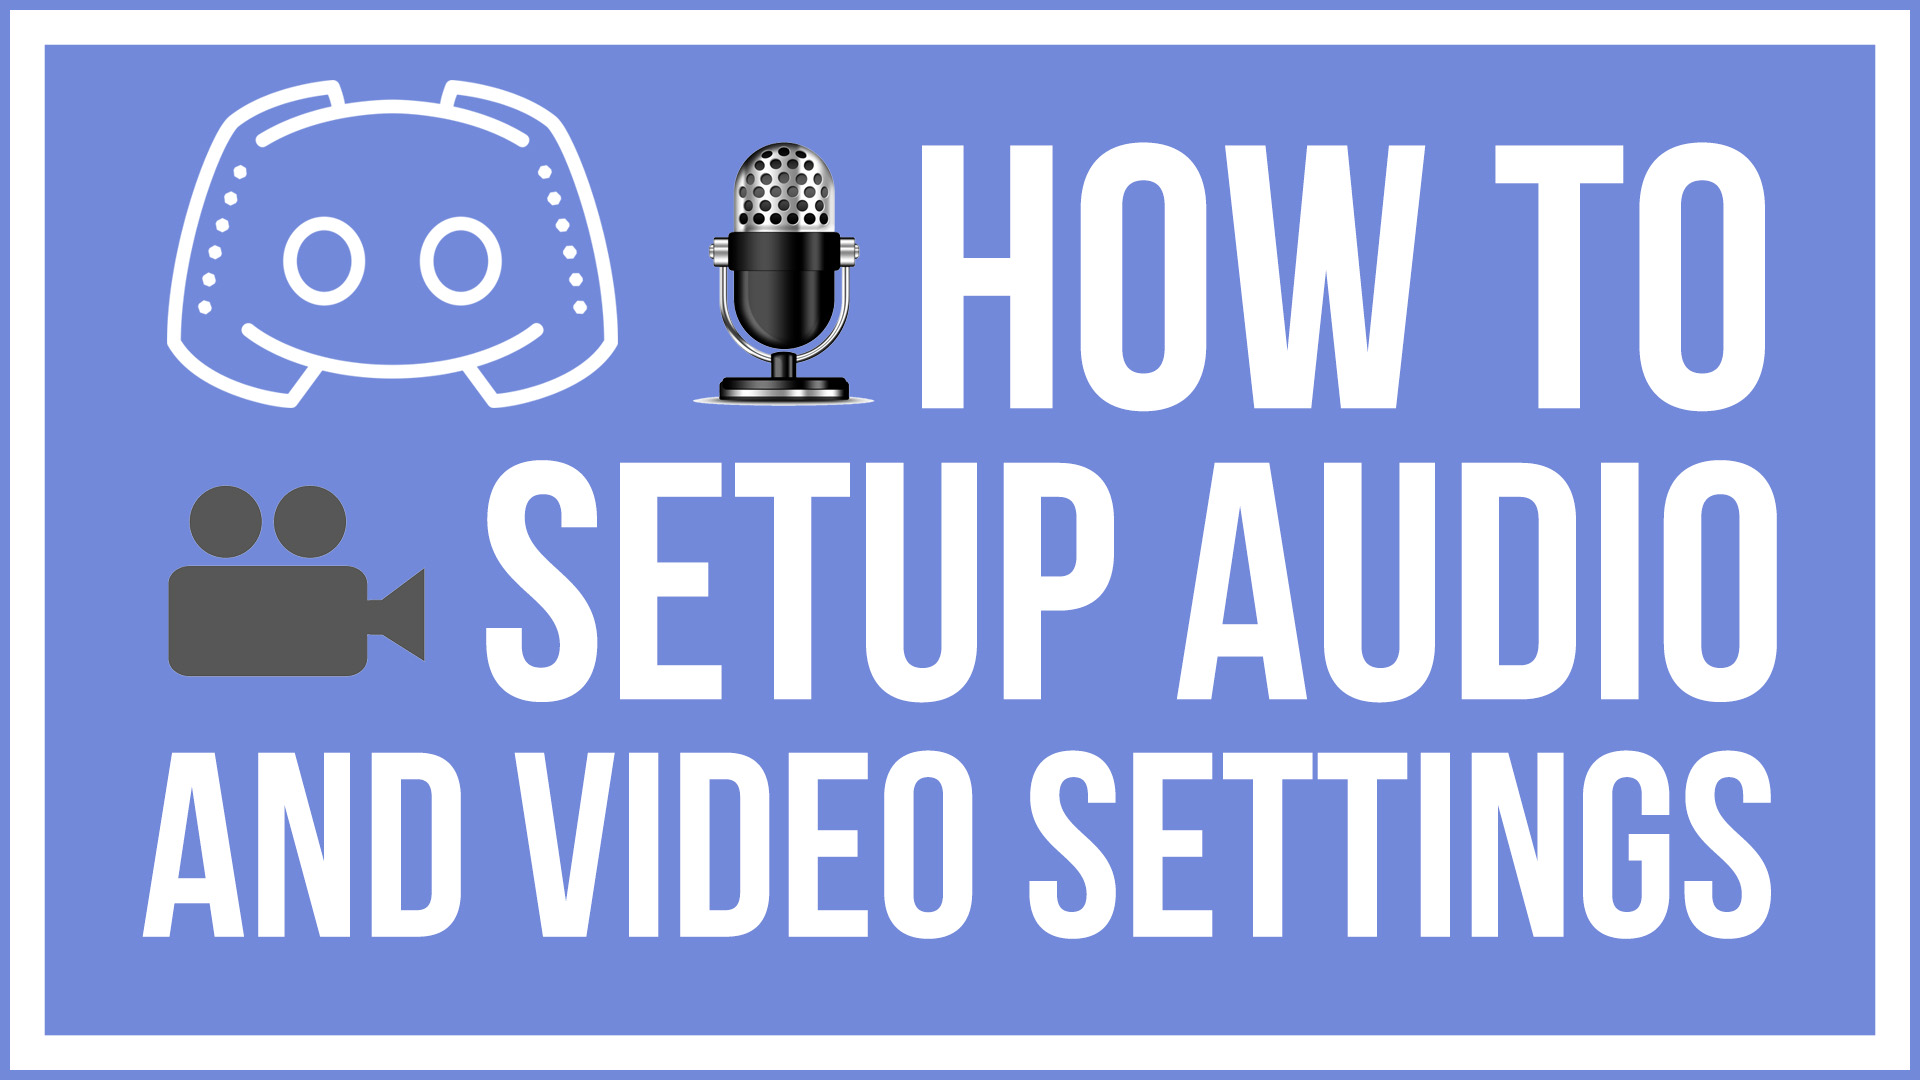 Discord Audio and Video Settings Thumb